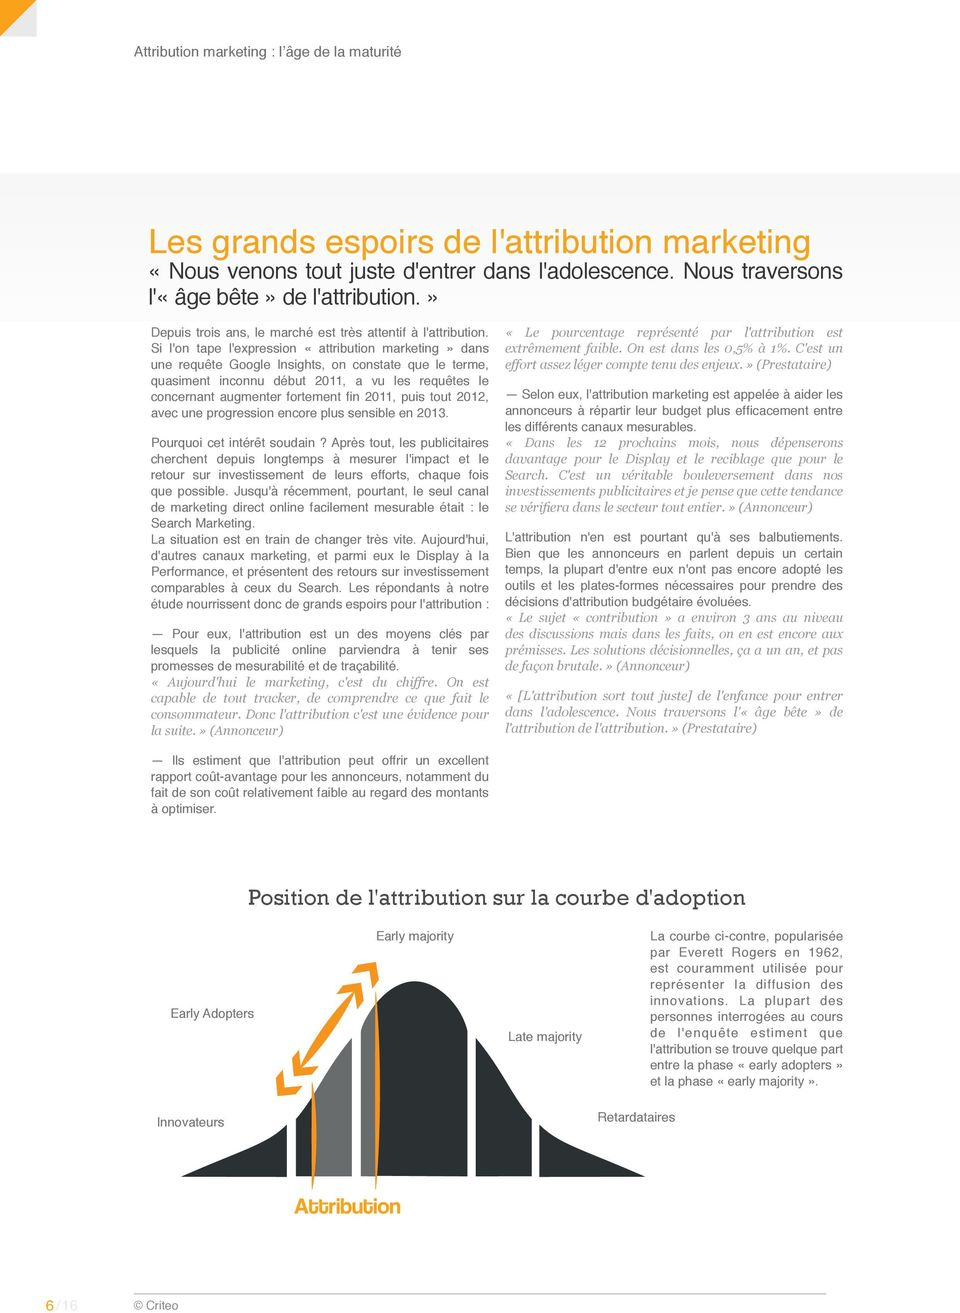 Si l'on tape l'expression «attribution marketing» dans une requête Google Insights, on constate que le terme, quasiment inconnu début 2011, a vu les requêtes le concernant augmenter fortement fin